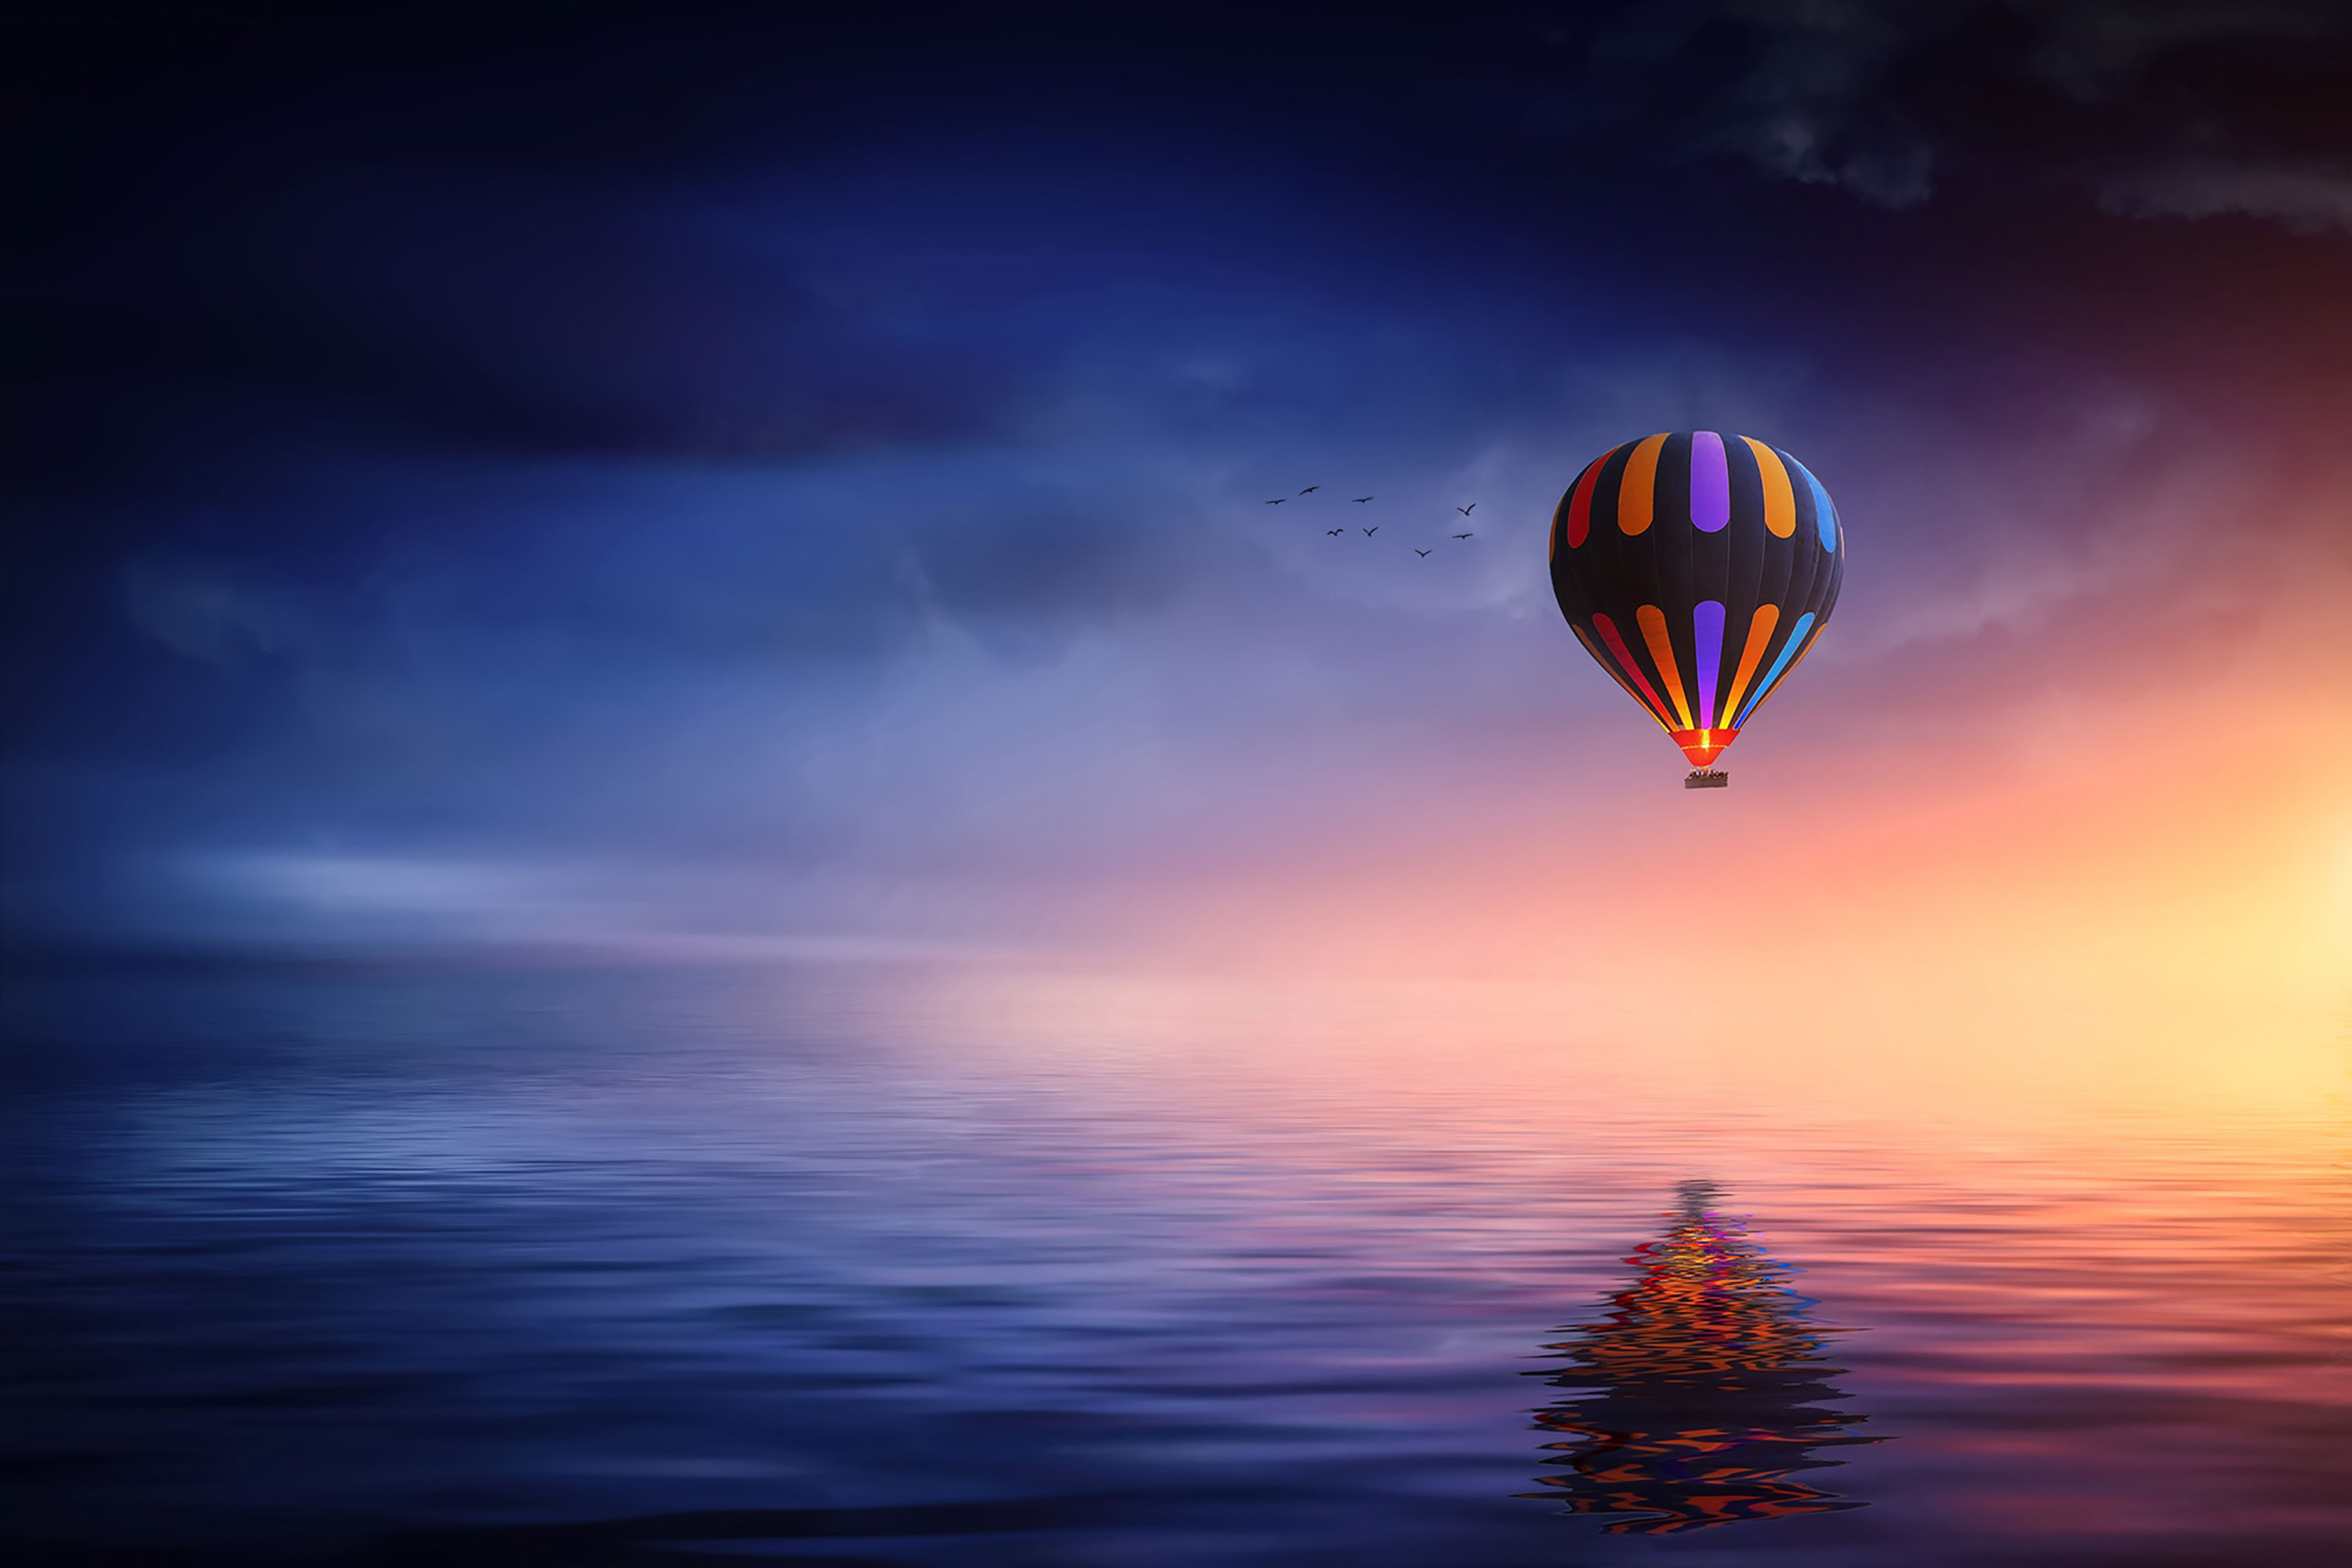 Balloon 4k Wallpapers For Your Desktop Or Mobile Screen Free And